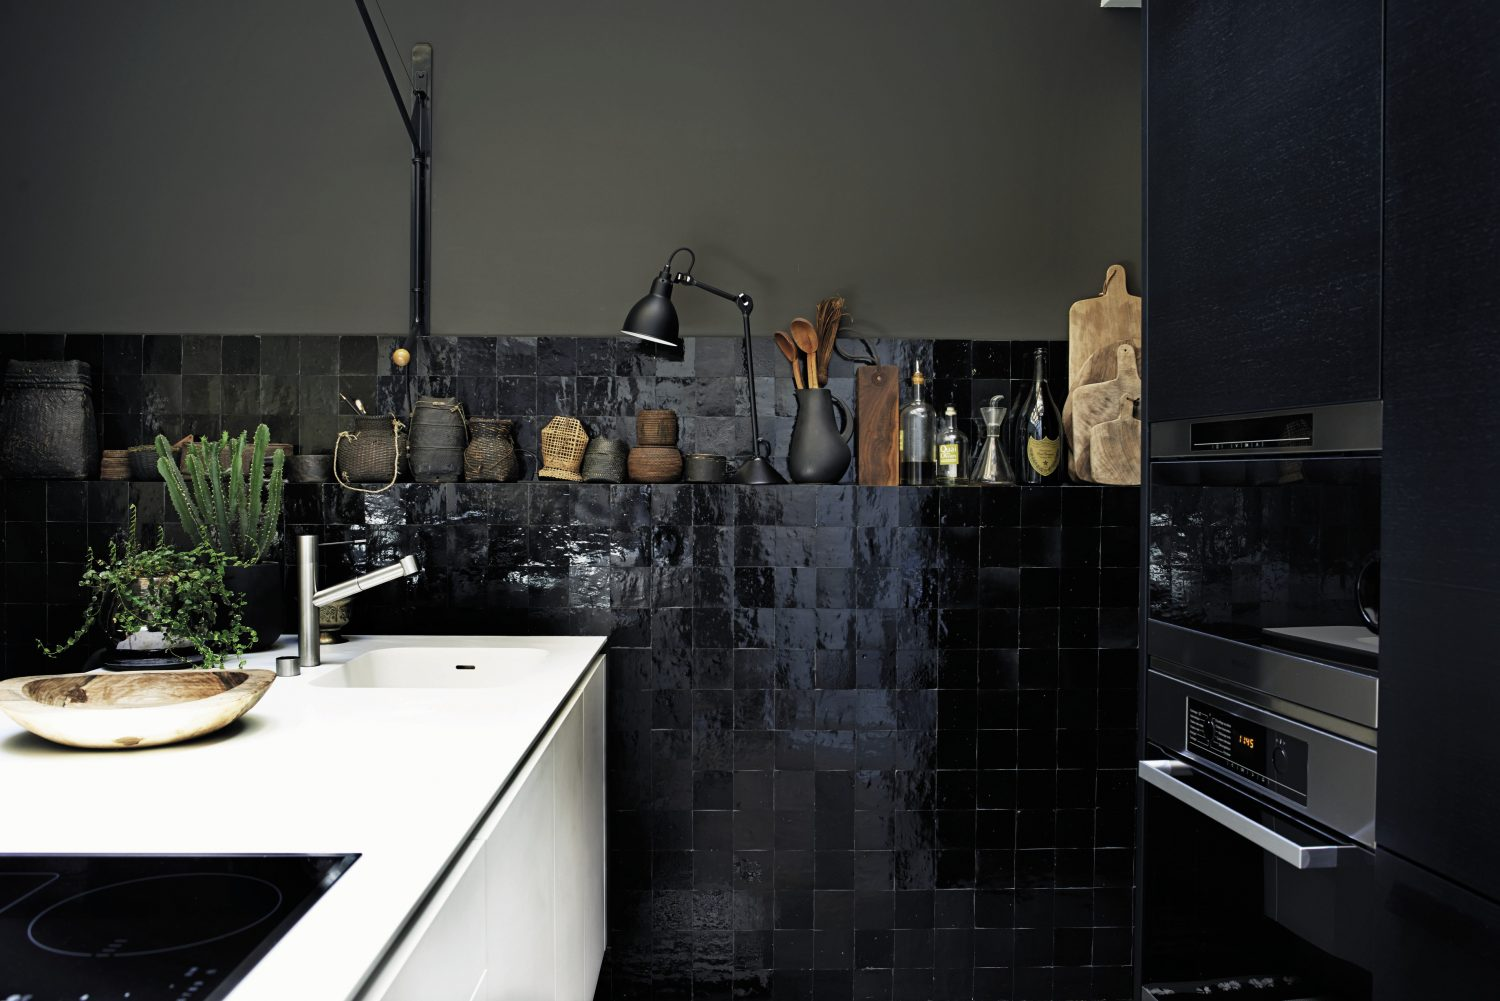 The black and white kitchen is lit by natural light from an atrium, so despite the glossy black tiles and bitter chocolate walls, the space is bright. A white island conceals storage and houses a sink and hob/stovetop. The part-tiled wall is built out enough to include a shallow shelf for utensils, chopping boards, bottles of olive oil, African baskets and a black Anglepoise lamp.